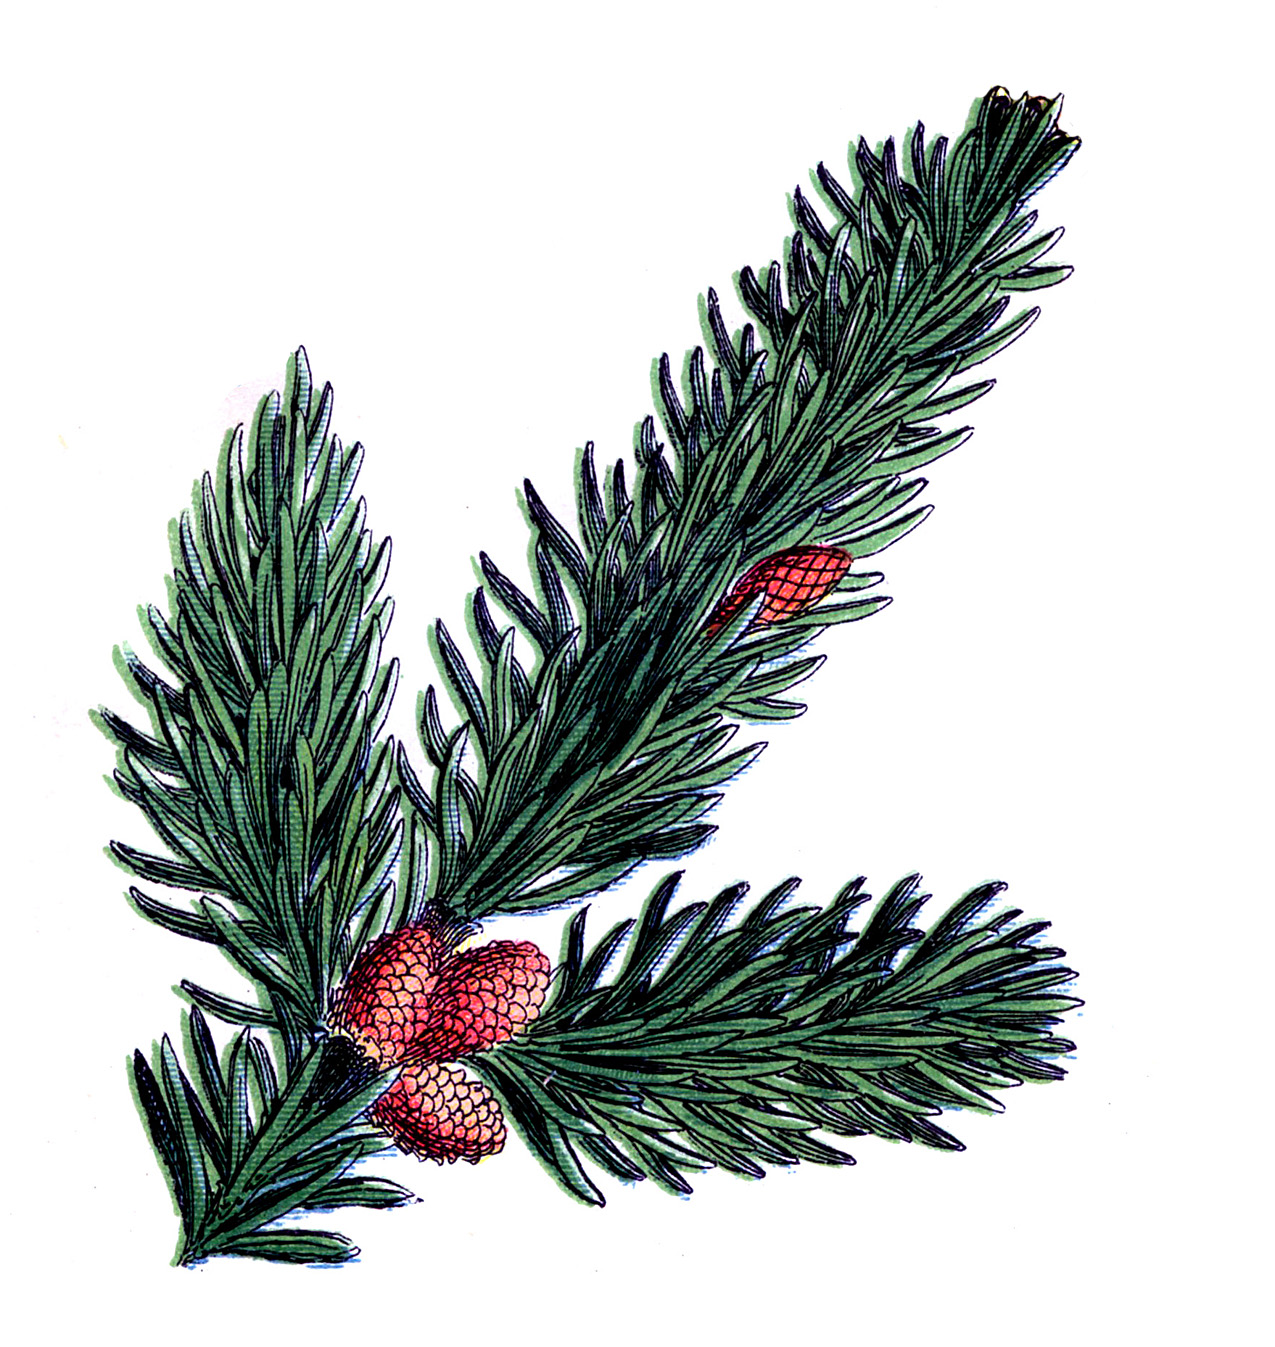 Pine Boughs transparent background PNG cliparts free download | HiClipart